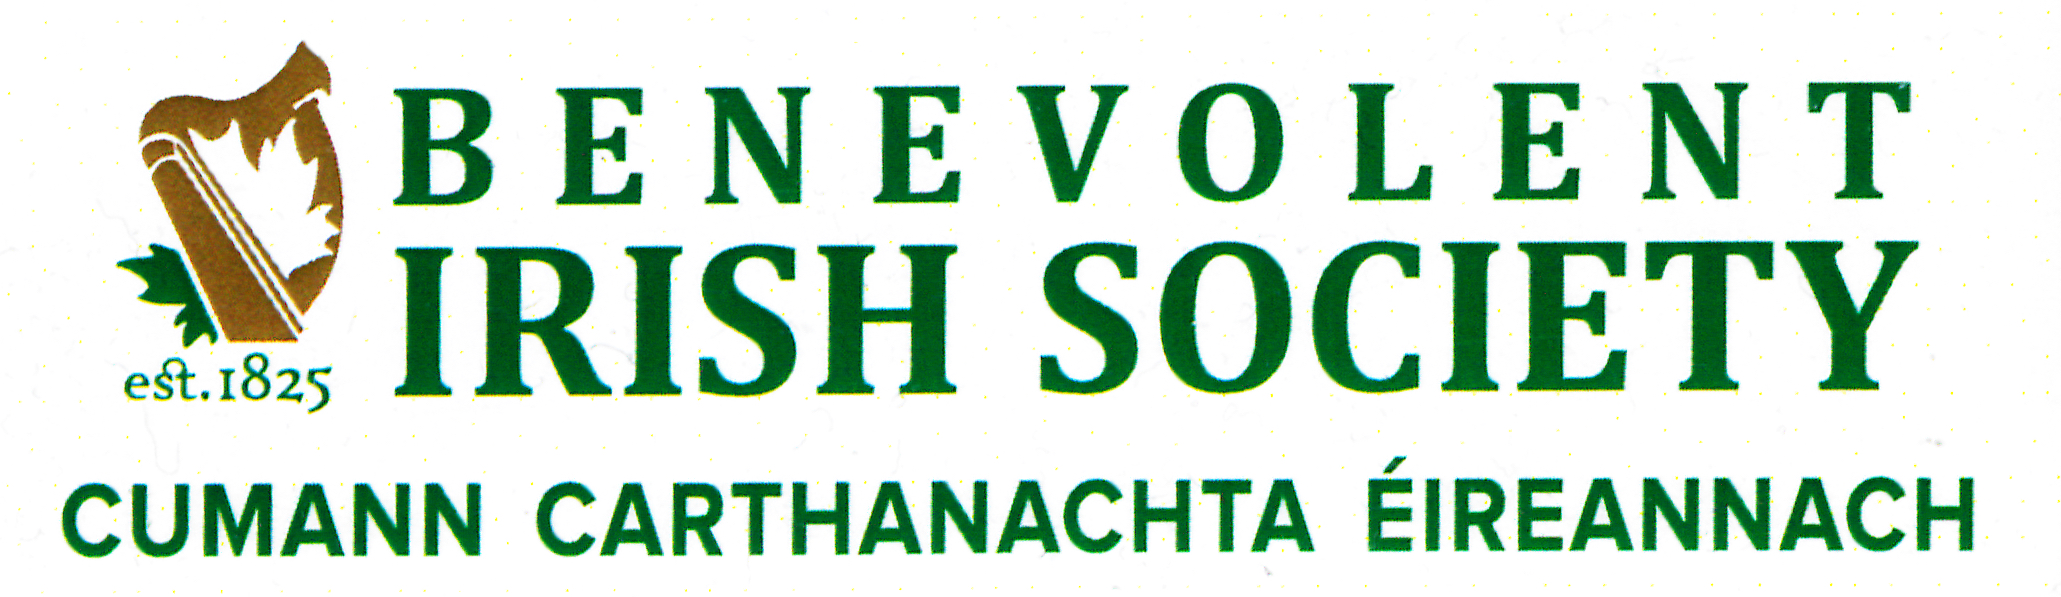 Benevolent Irish Society - Oral History Interviews Collection